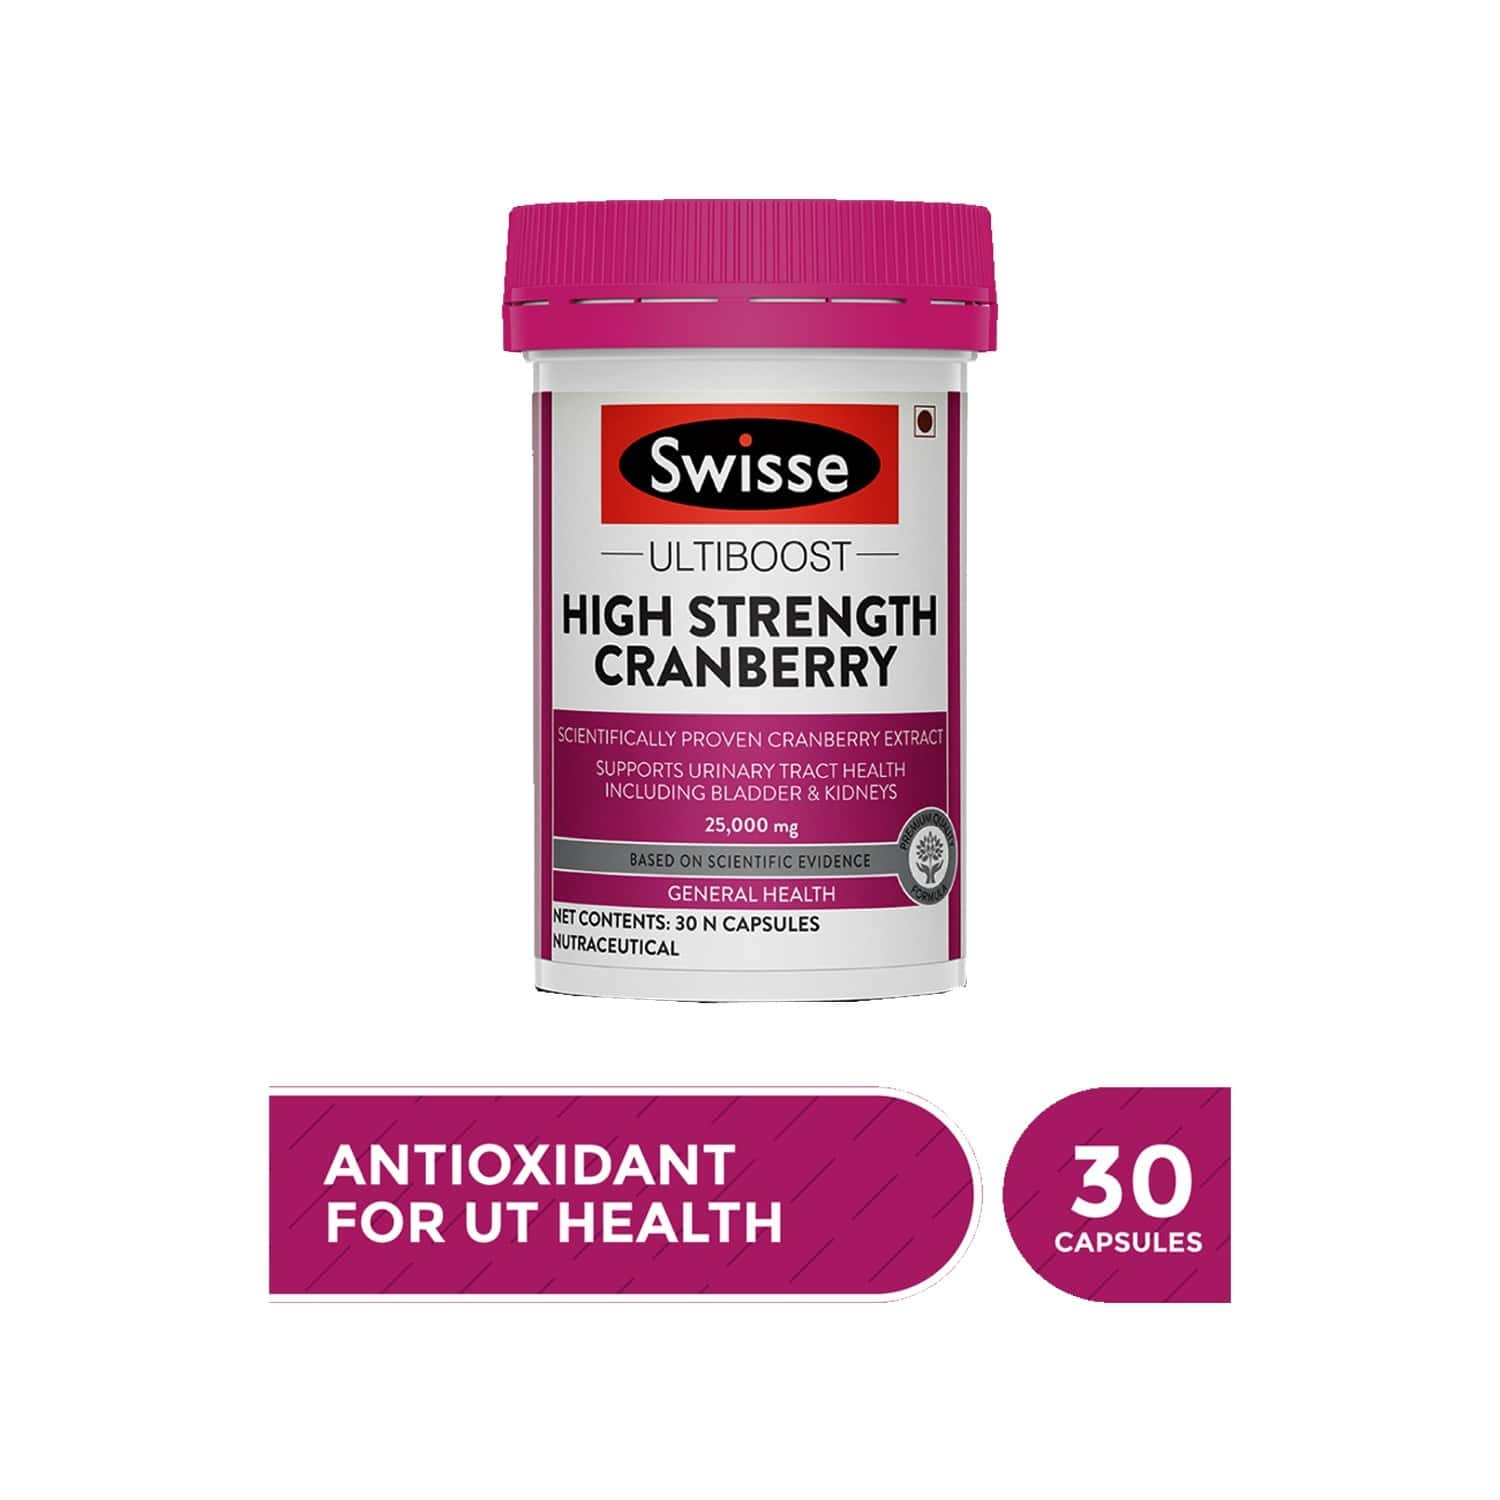 Swisse Ultiboost High Strength Cranberry Antioxidant Rich Supplements For Bladder & Kidney Health - 30 Tablets